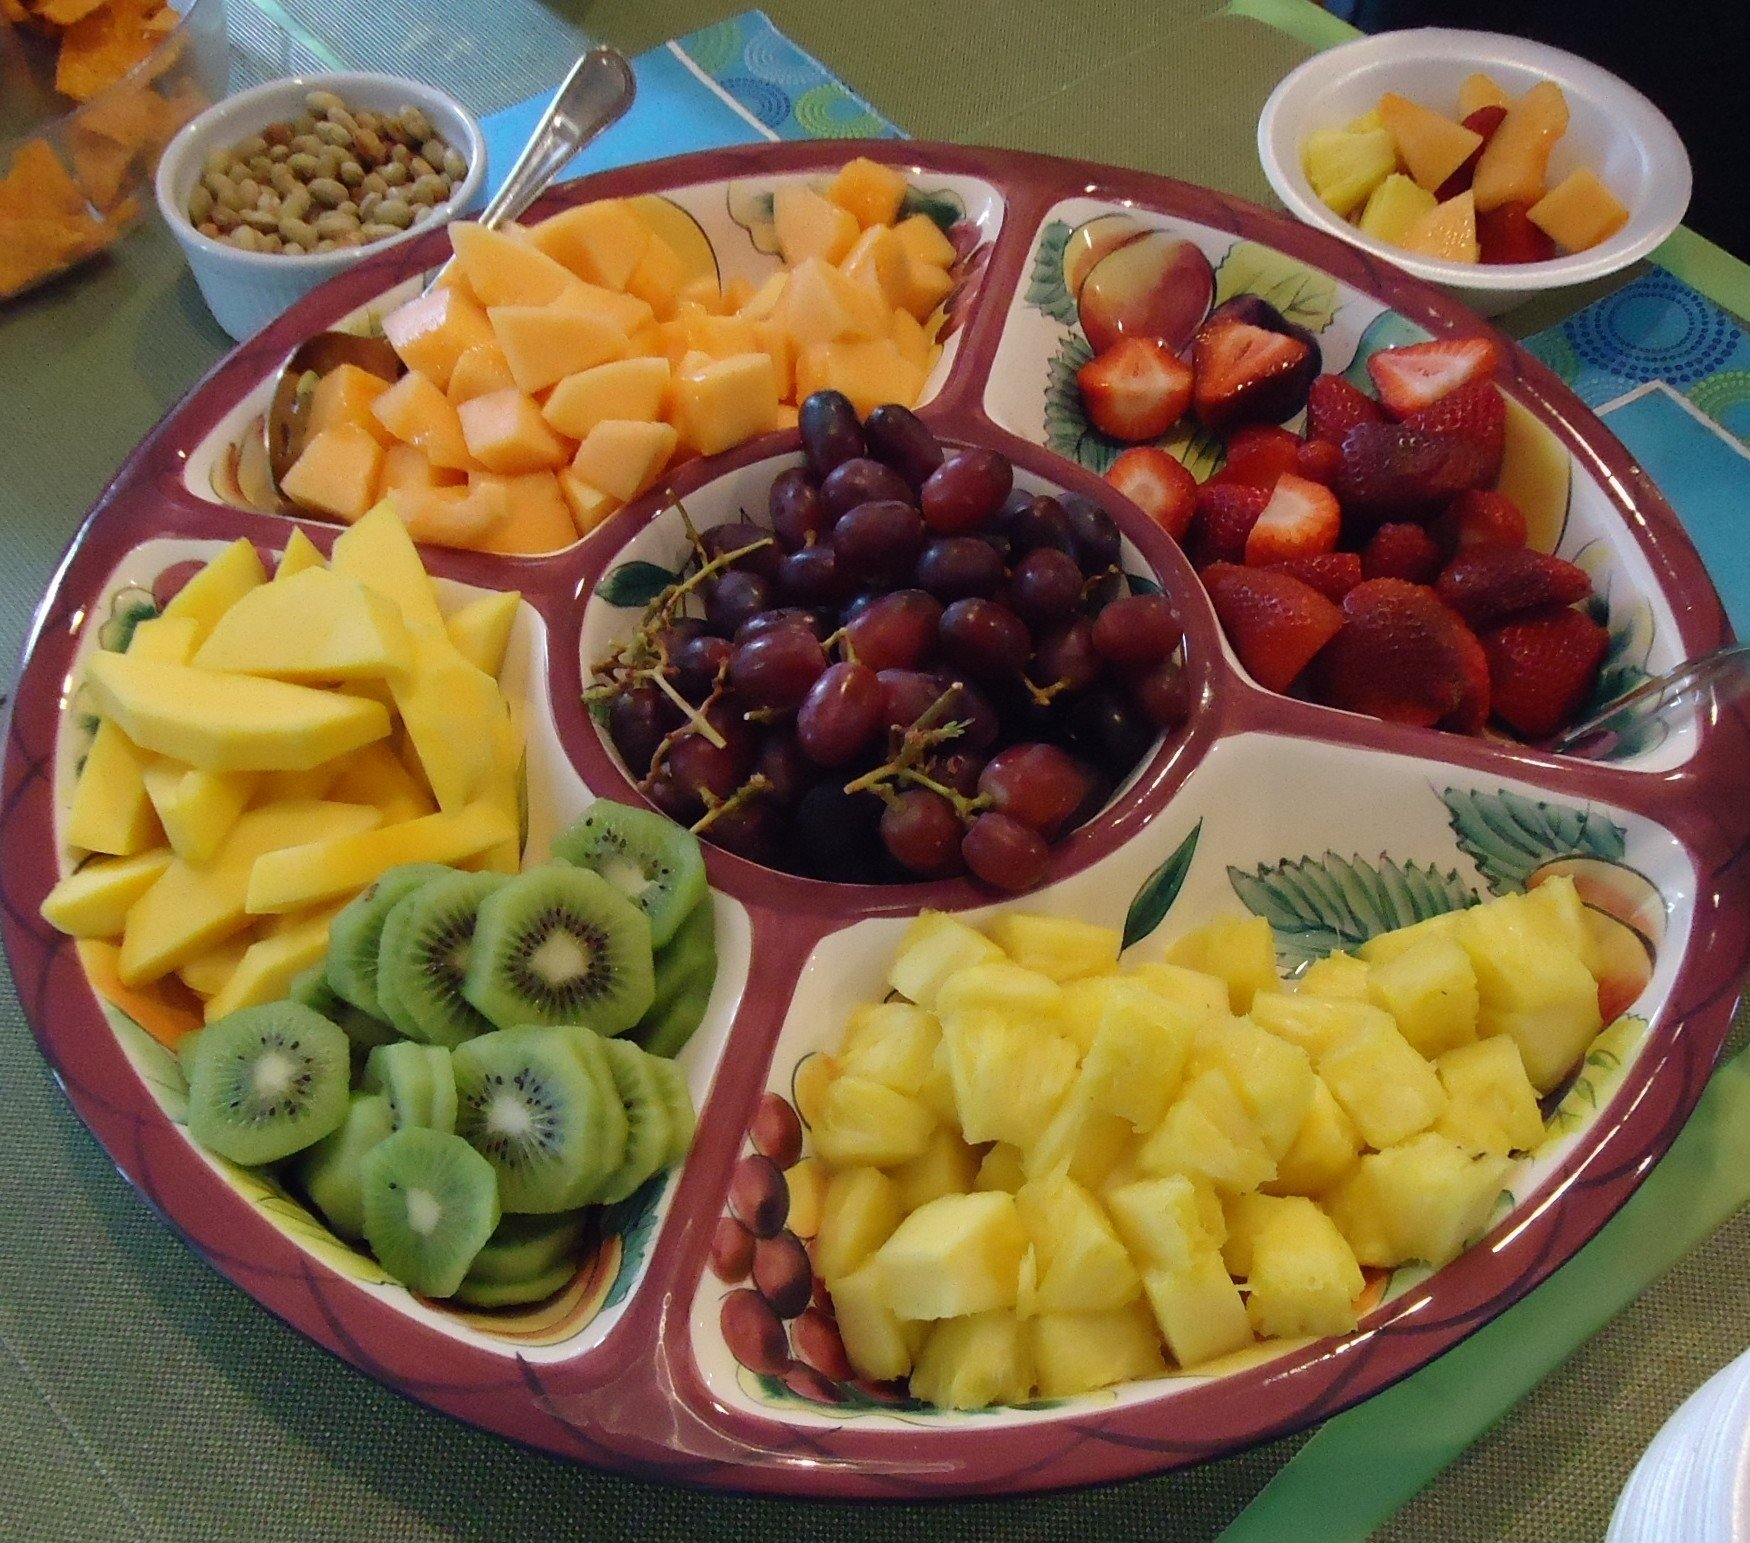 10 Attractive Fruit Tray Ideas For Parties filefruit platter at a party with kiwi melons strawberries etc 2021